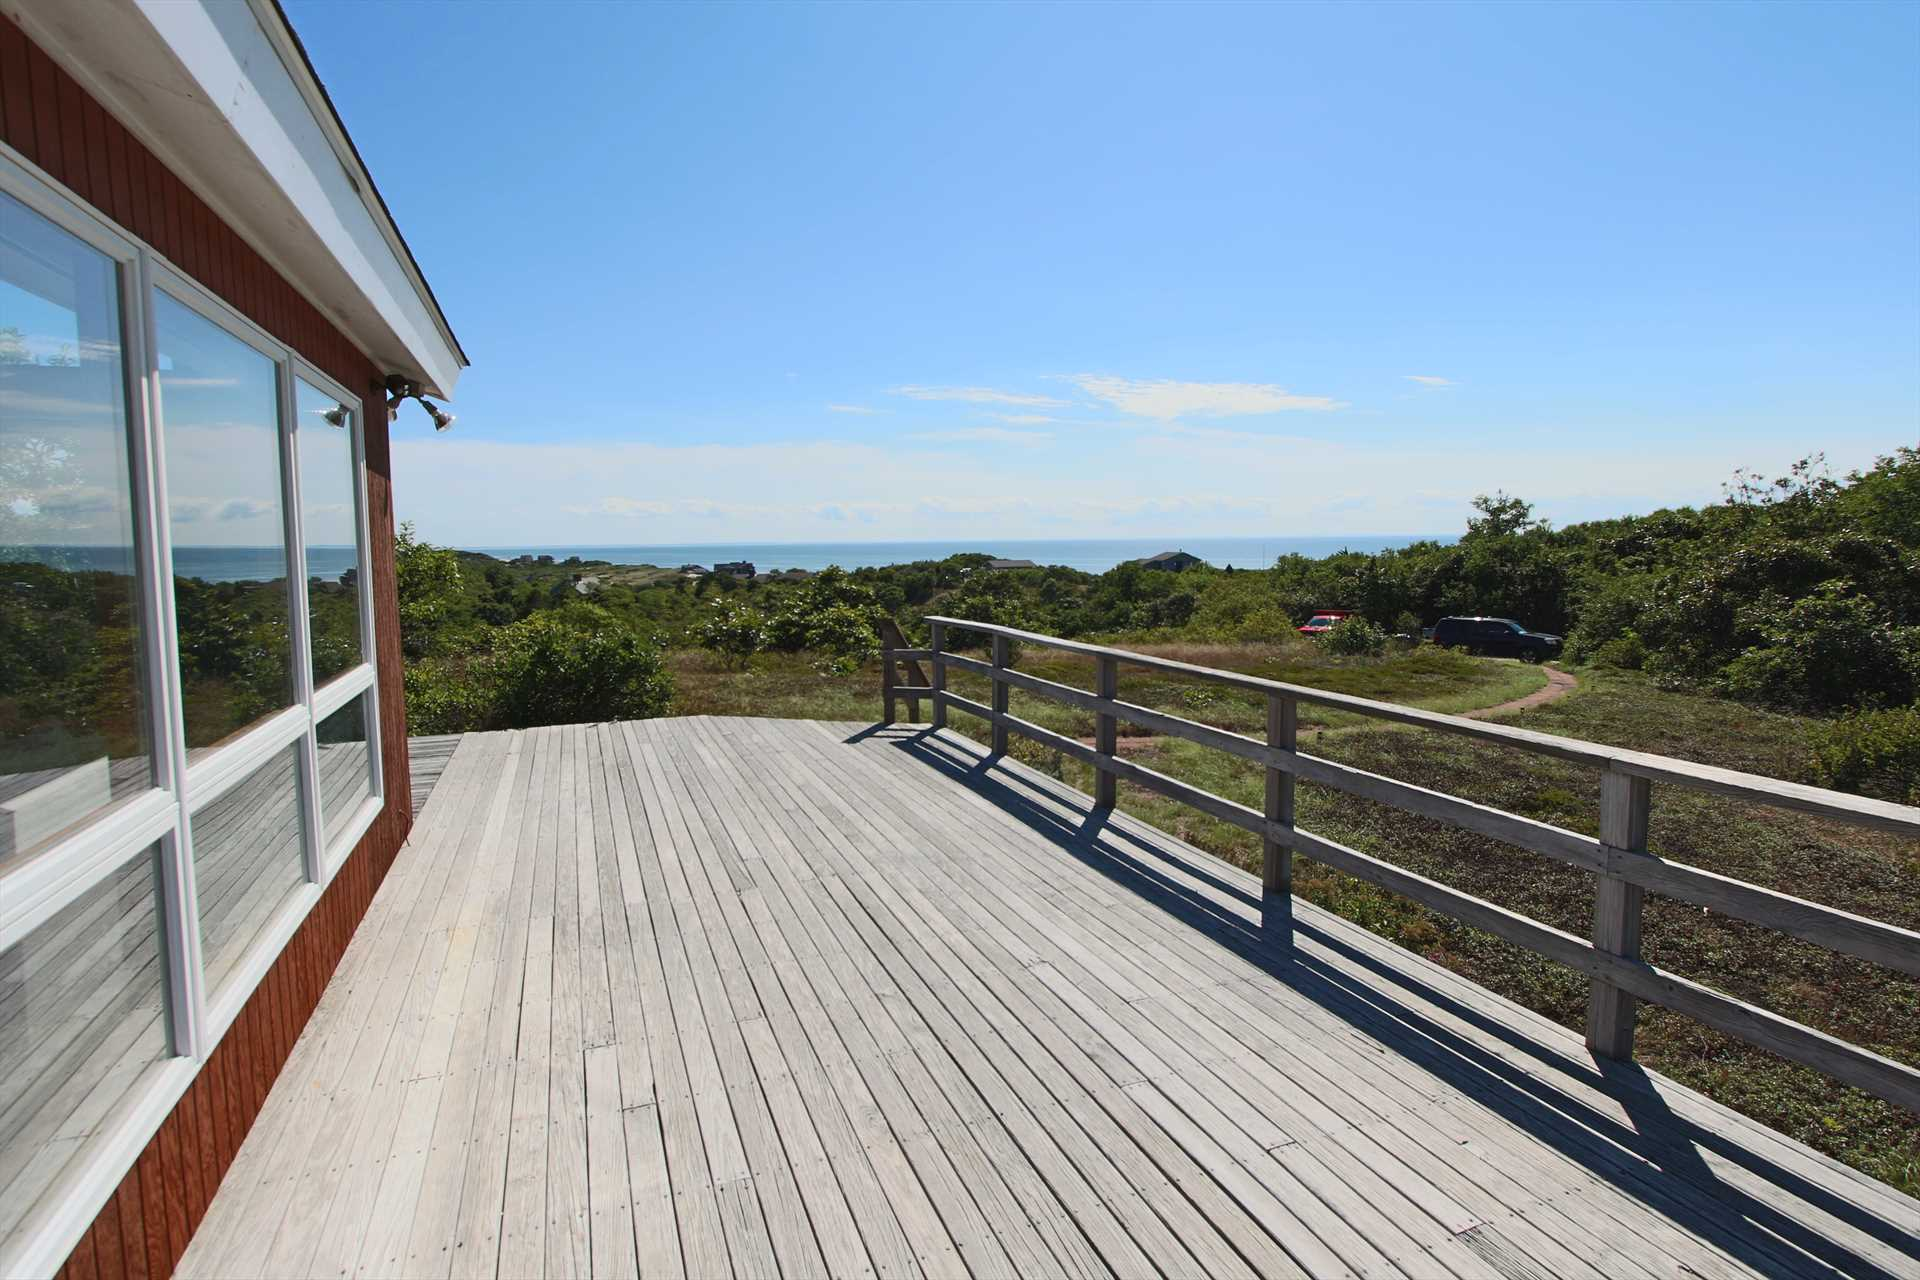 Water Views of Cape Cod Bay with Walk to Private Neighborhoo